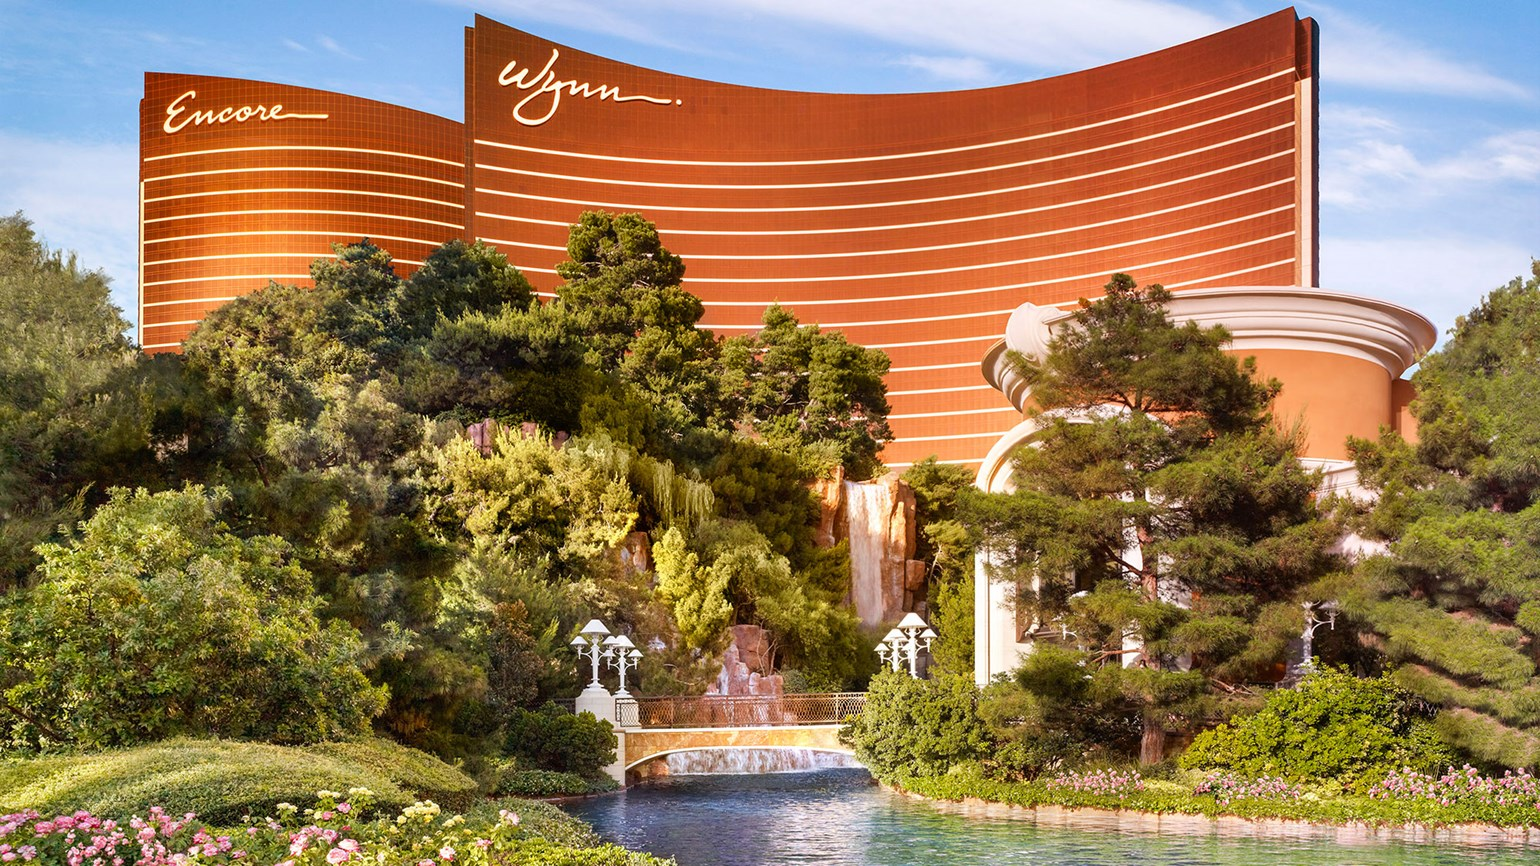 Wynn, Cosmopolitan get the OK to operate casinos at full capacity